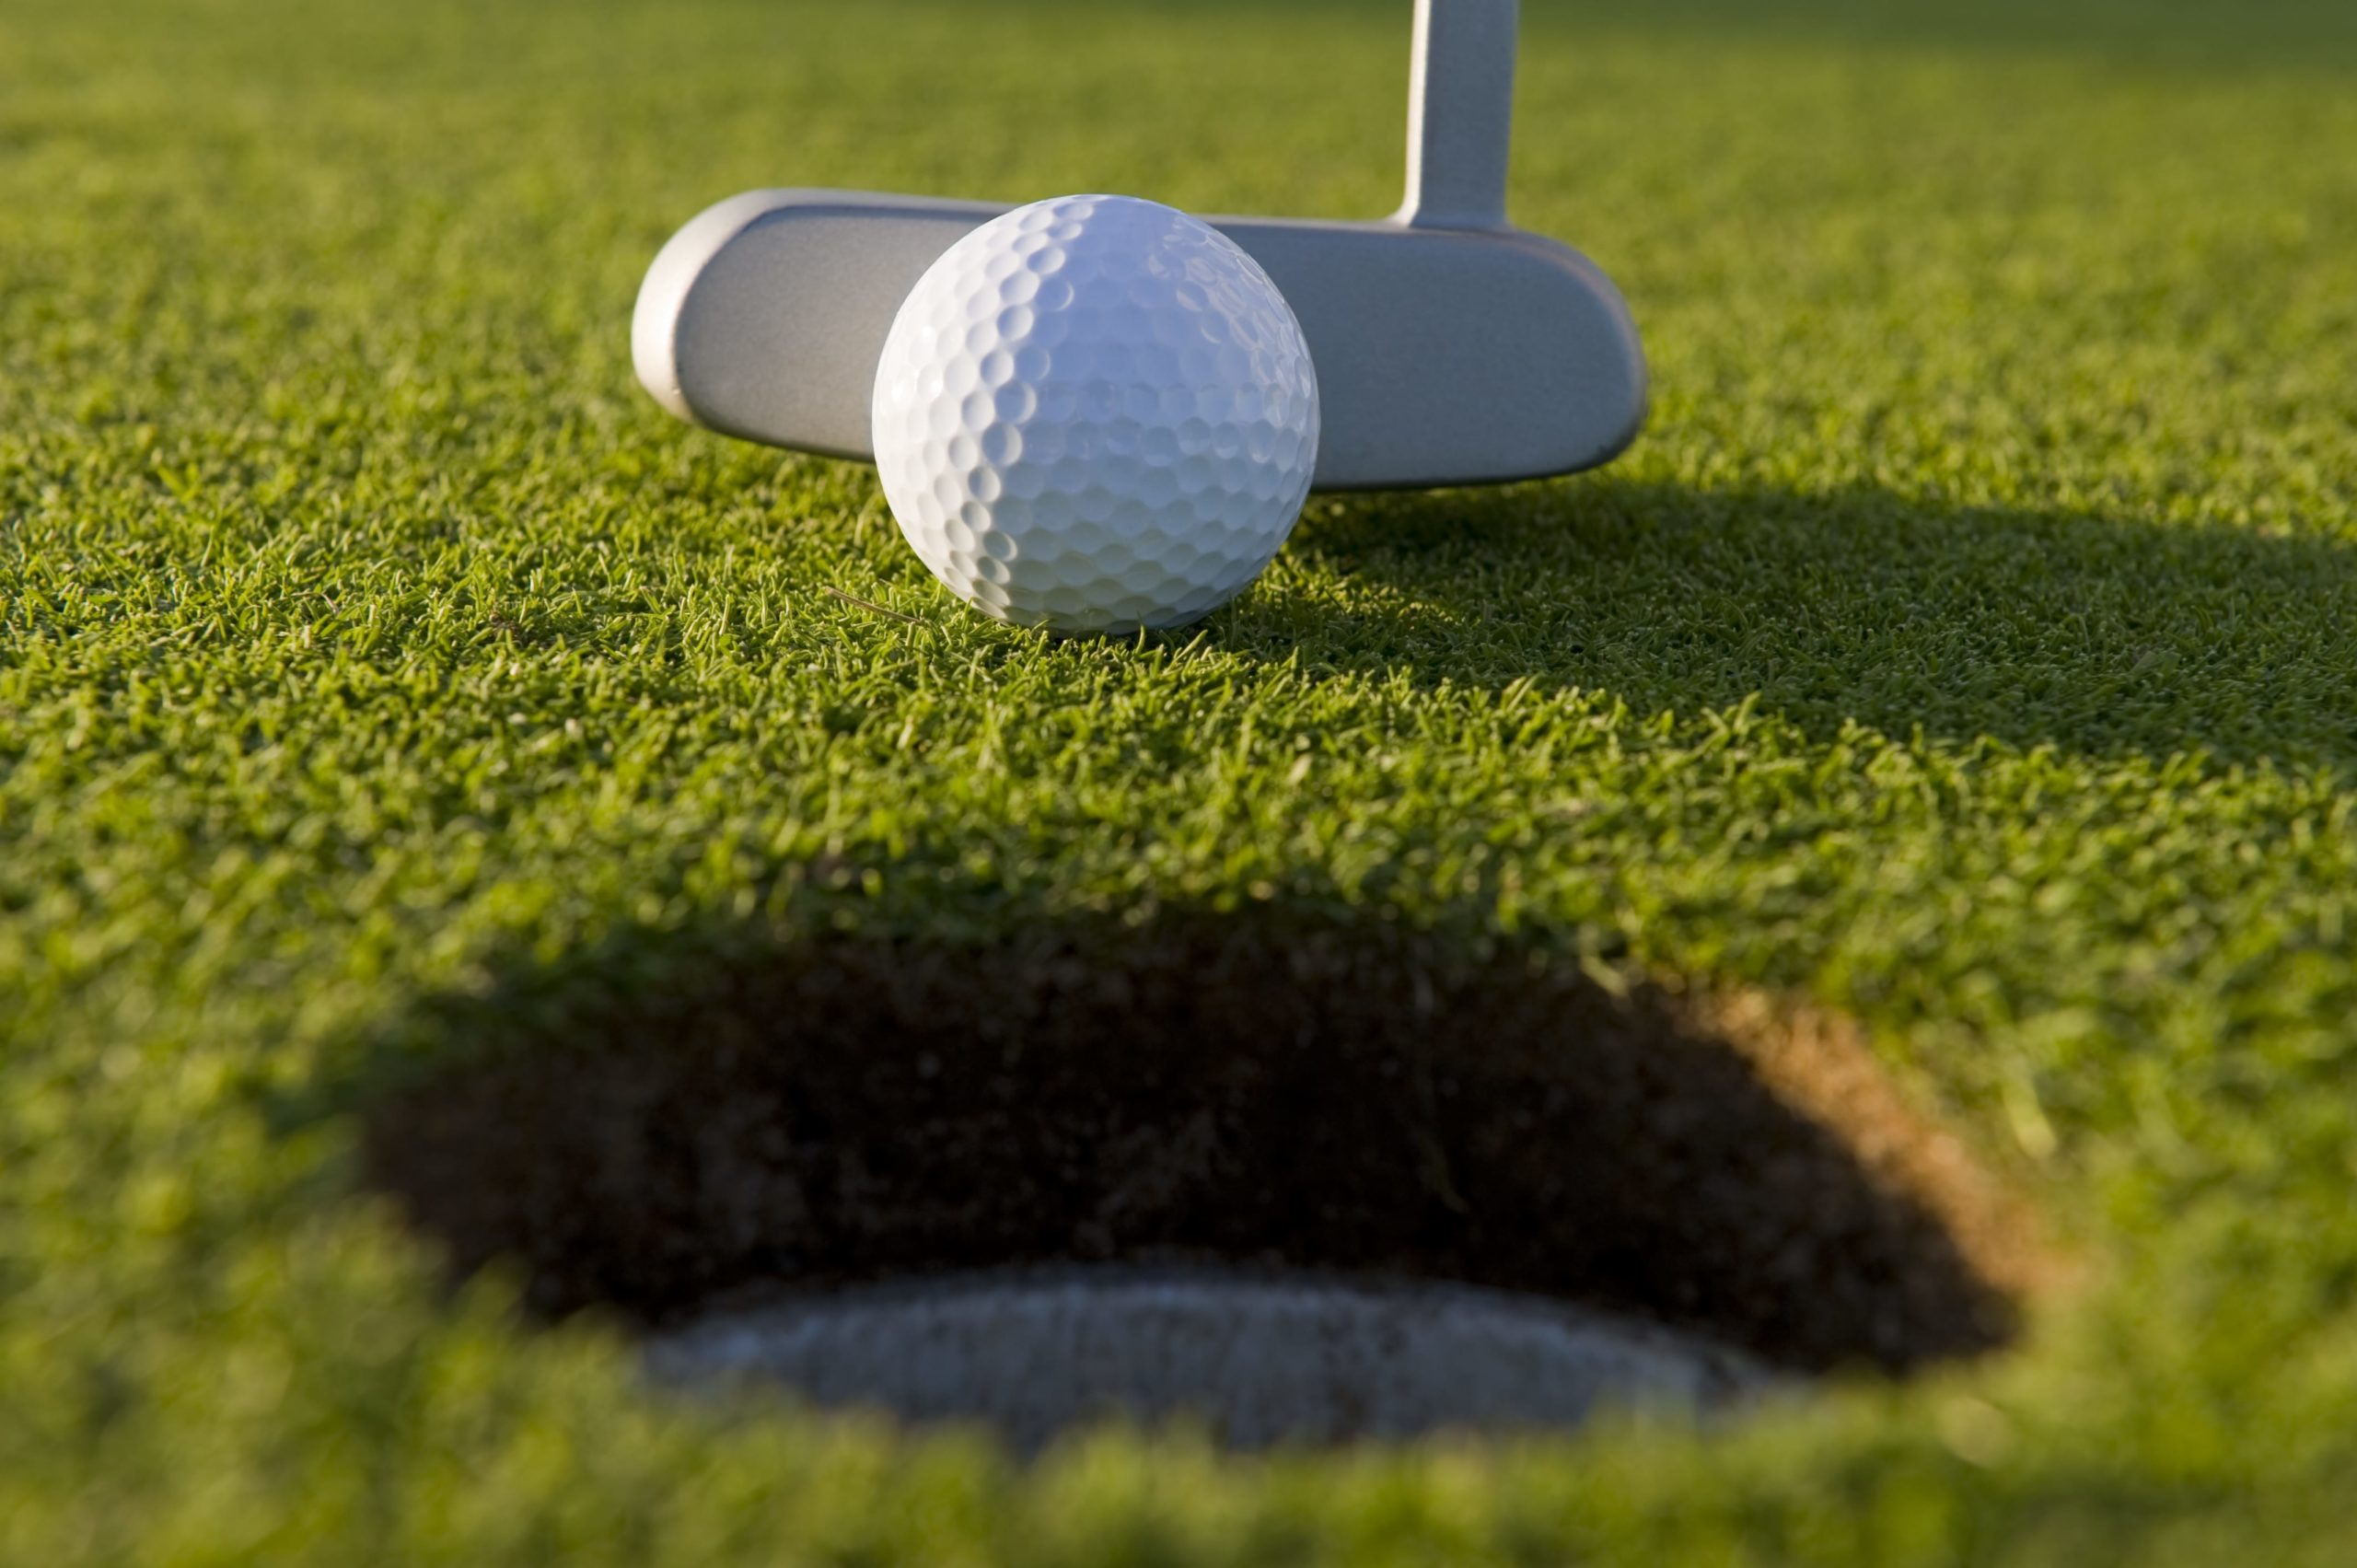 short putts on fast greens